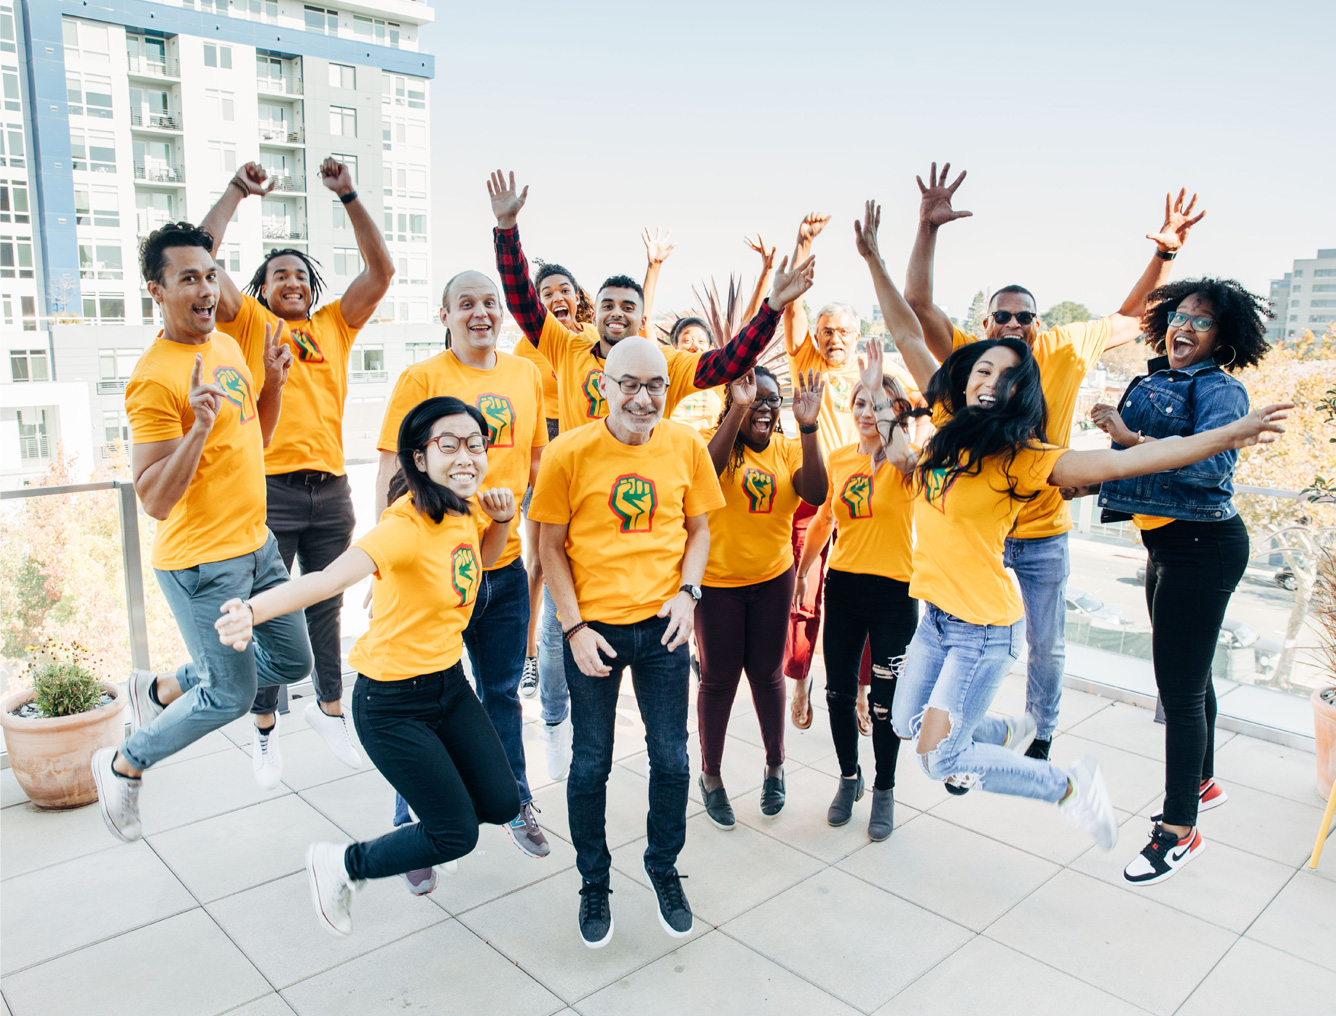 Group of CZI employees in symbolic power fist t-shirts, smiling and leaping in the air before heading out to AfroTech (Diversity, Equity, and Inclusion).